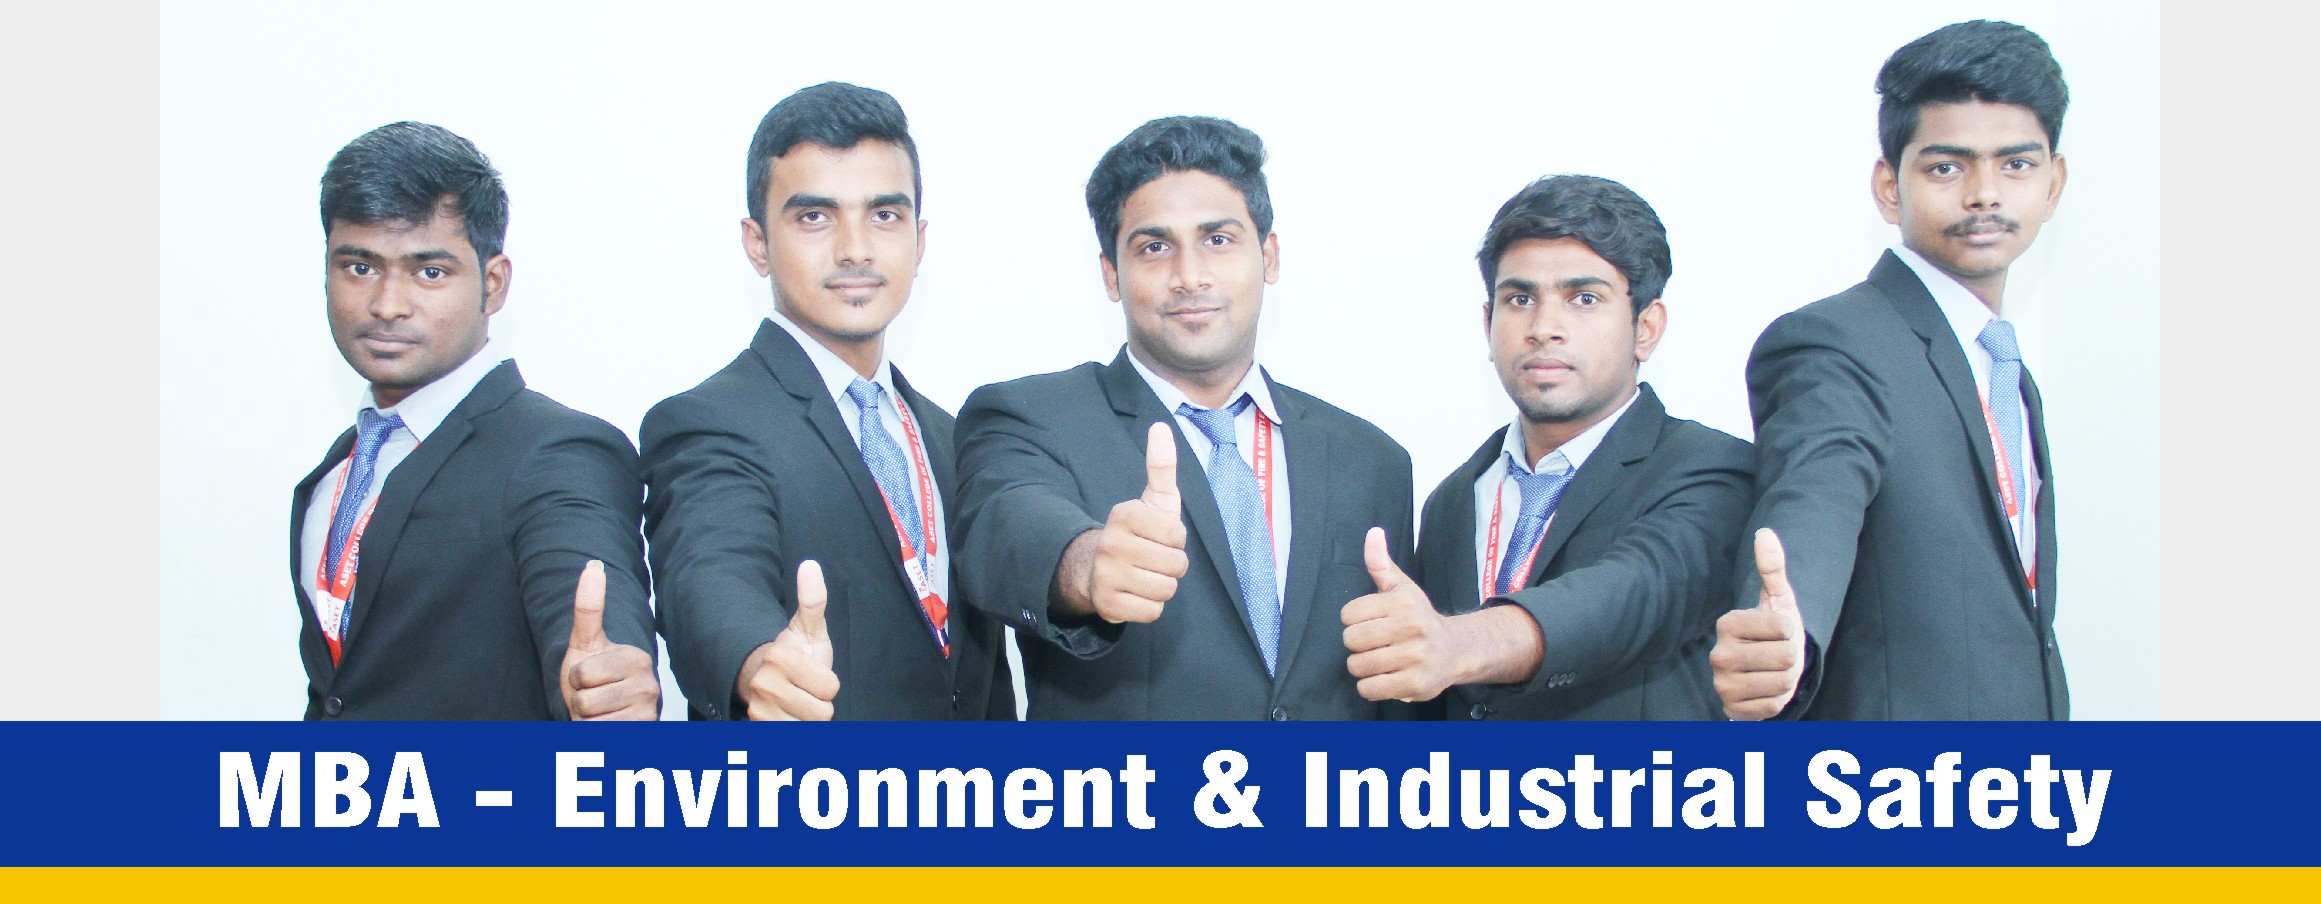 Mba Environment & Industrail Safety